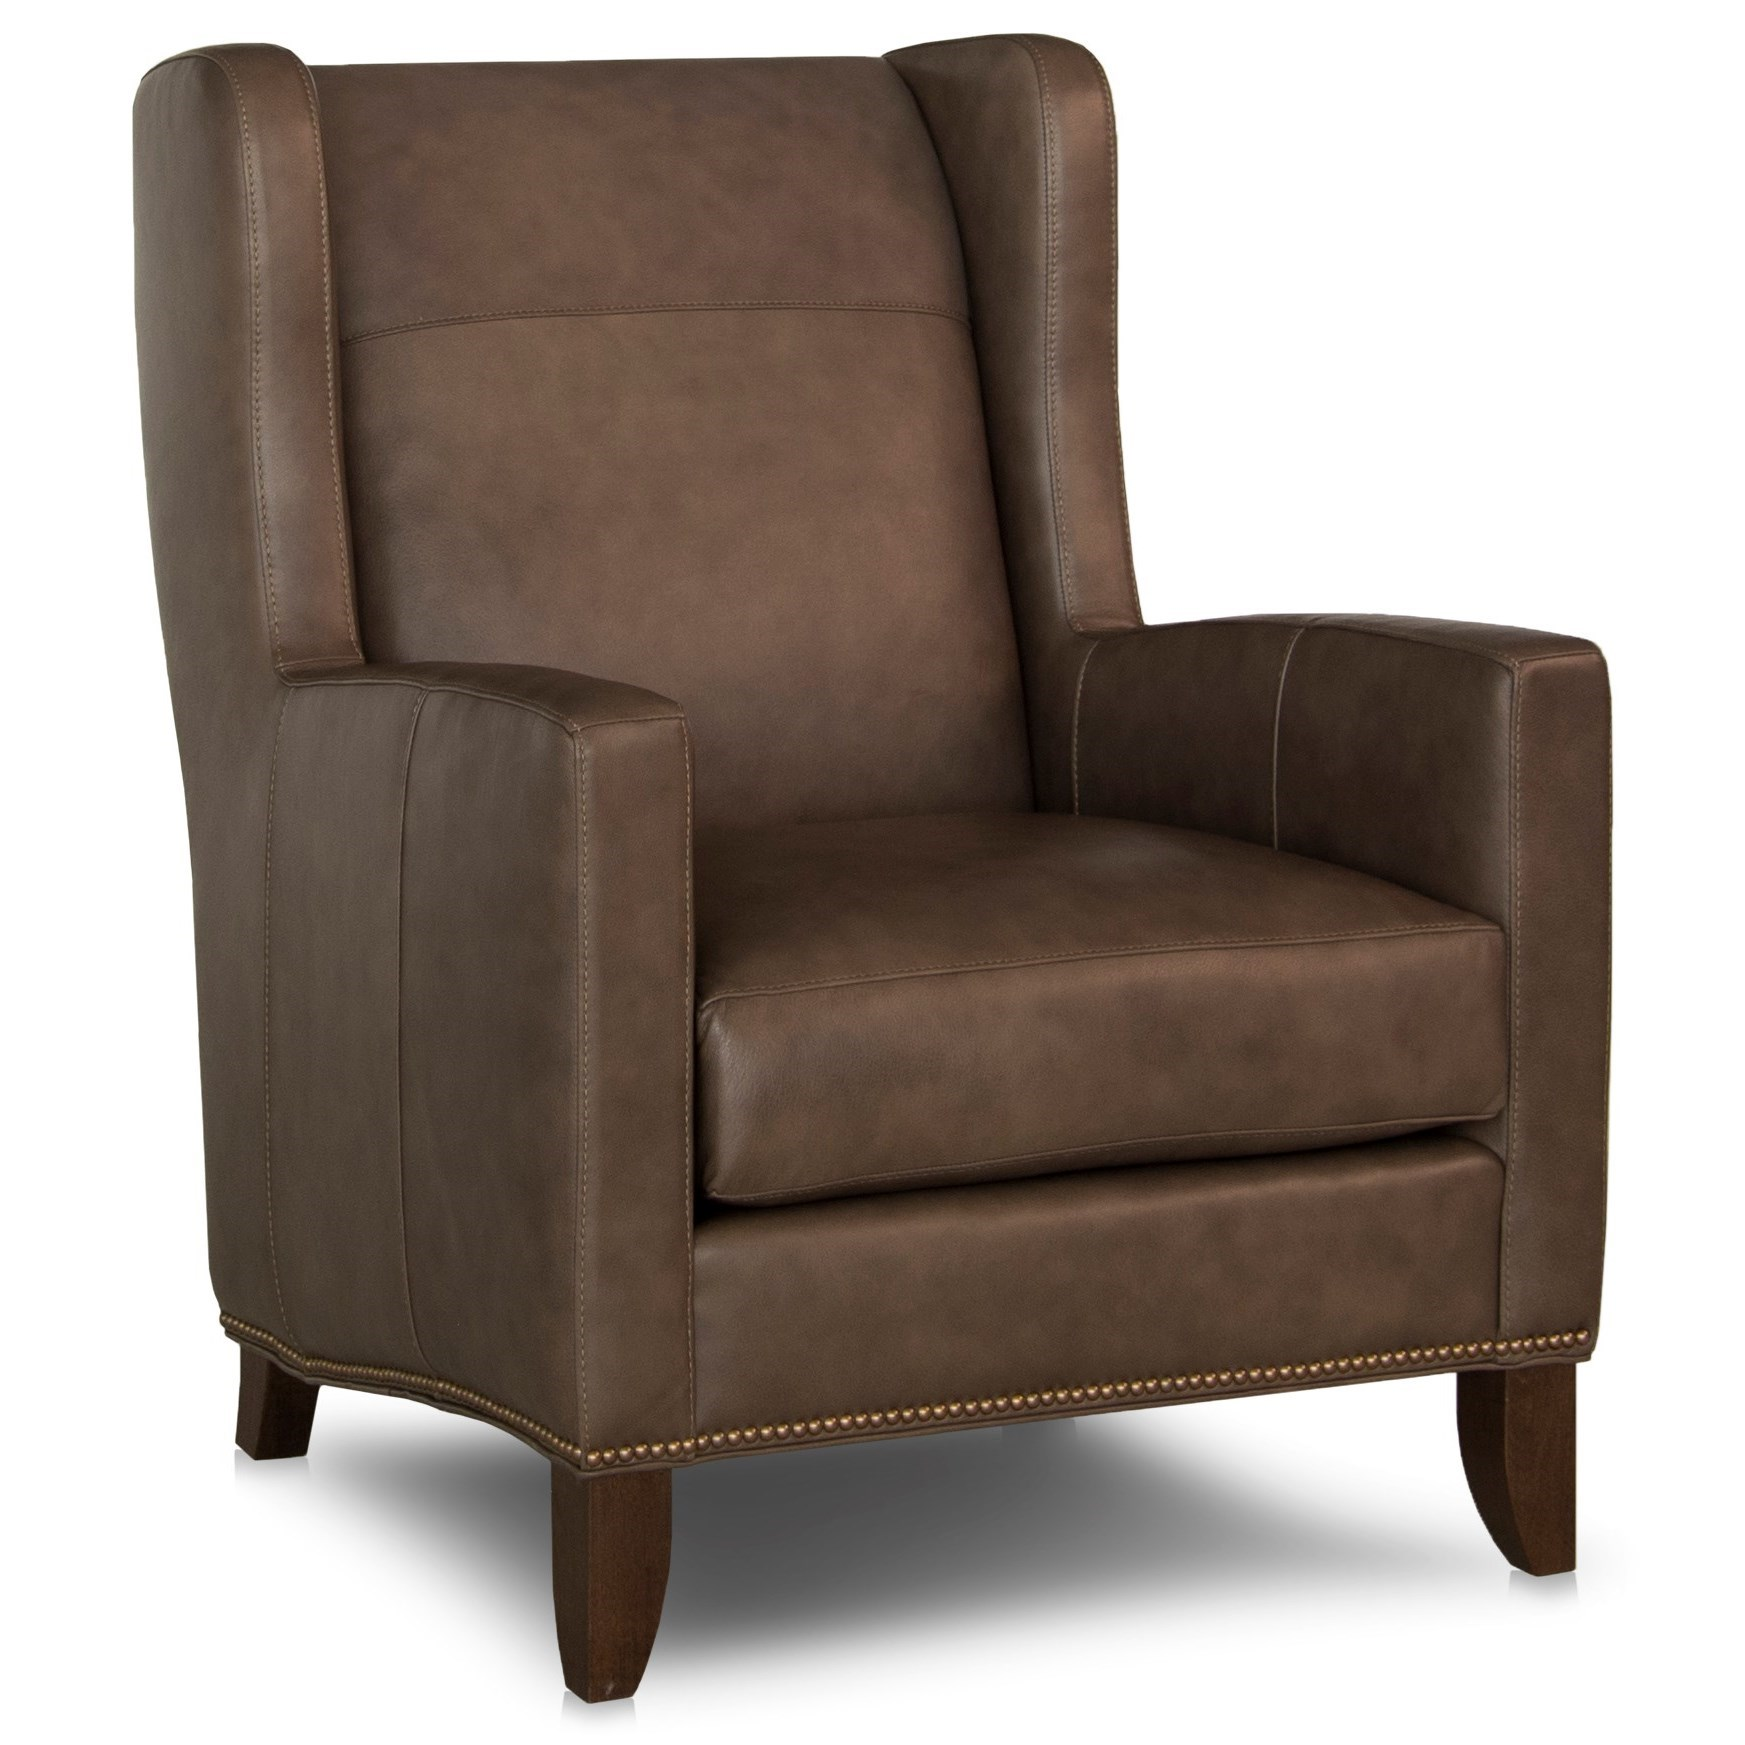 538 Wing Back Chair by Smith Brothers at Wayside Furniture